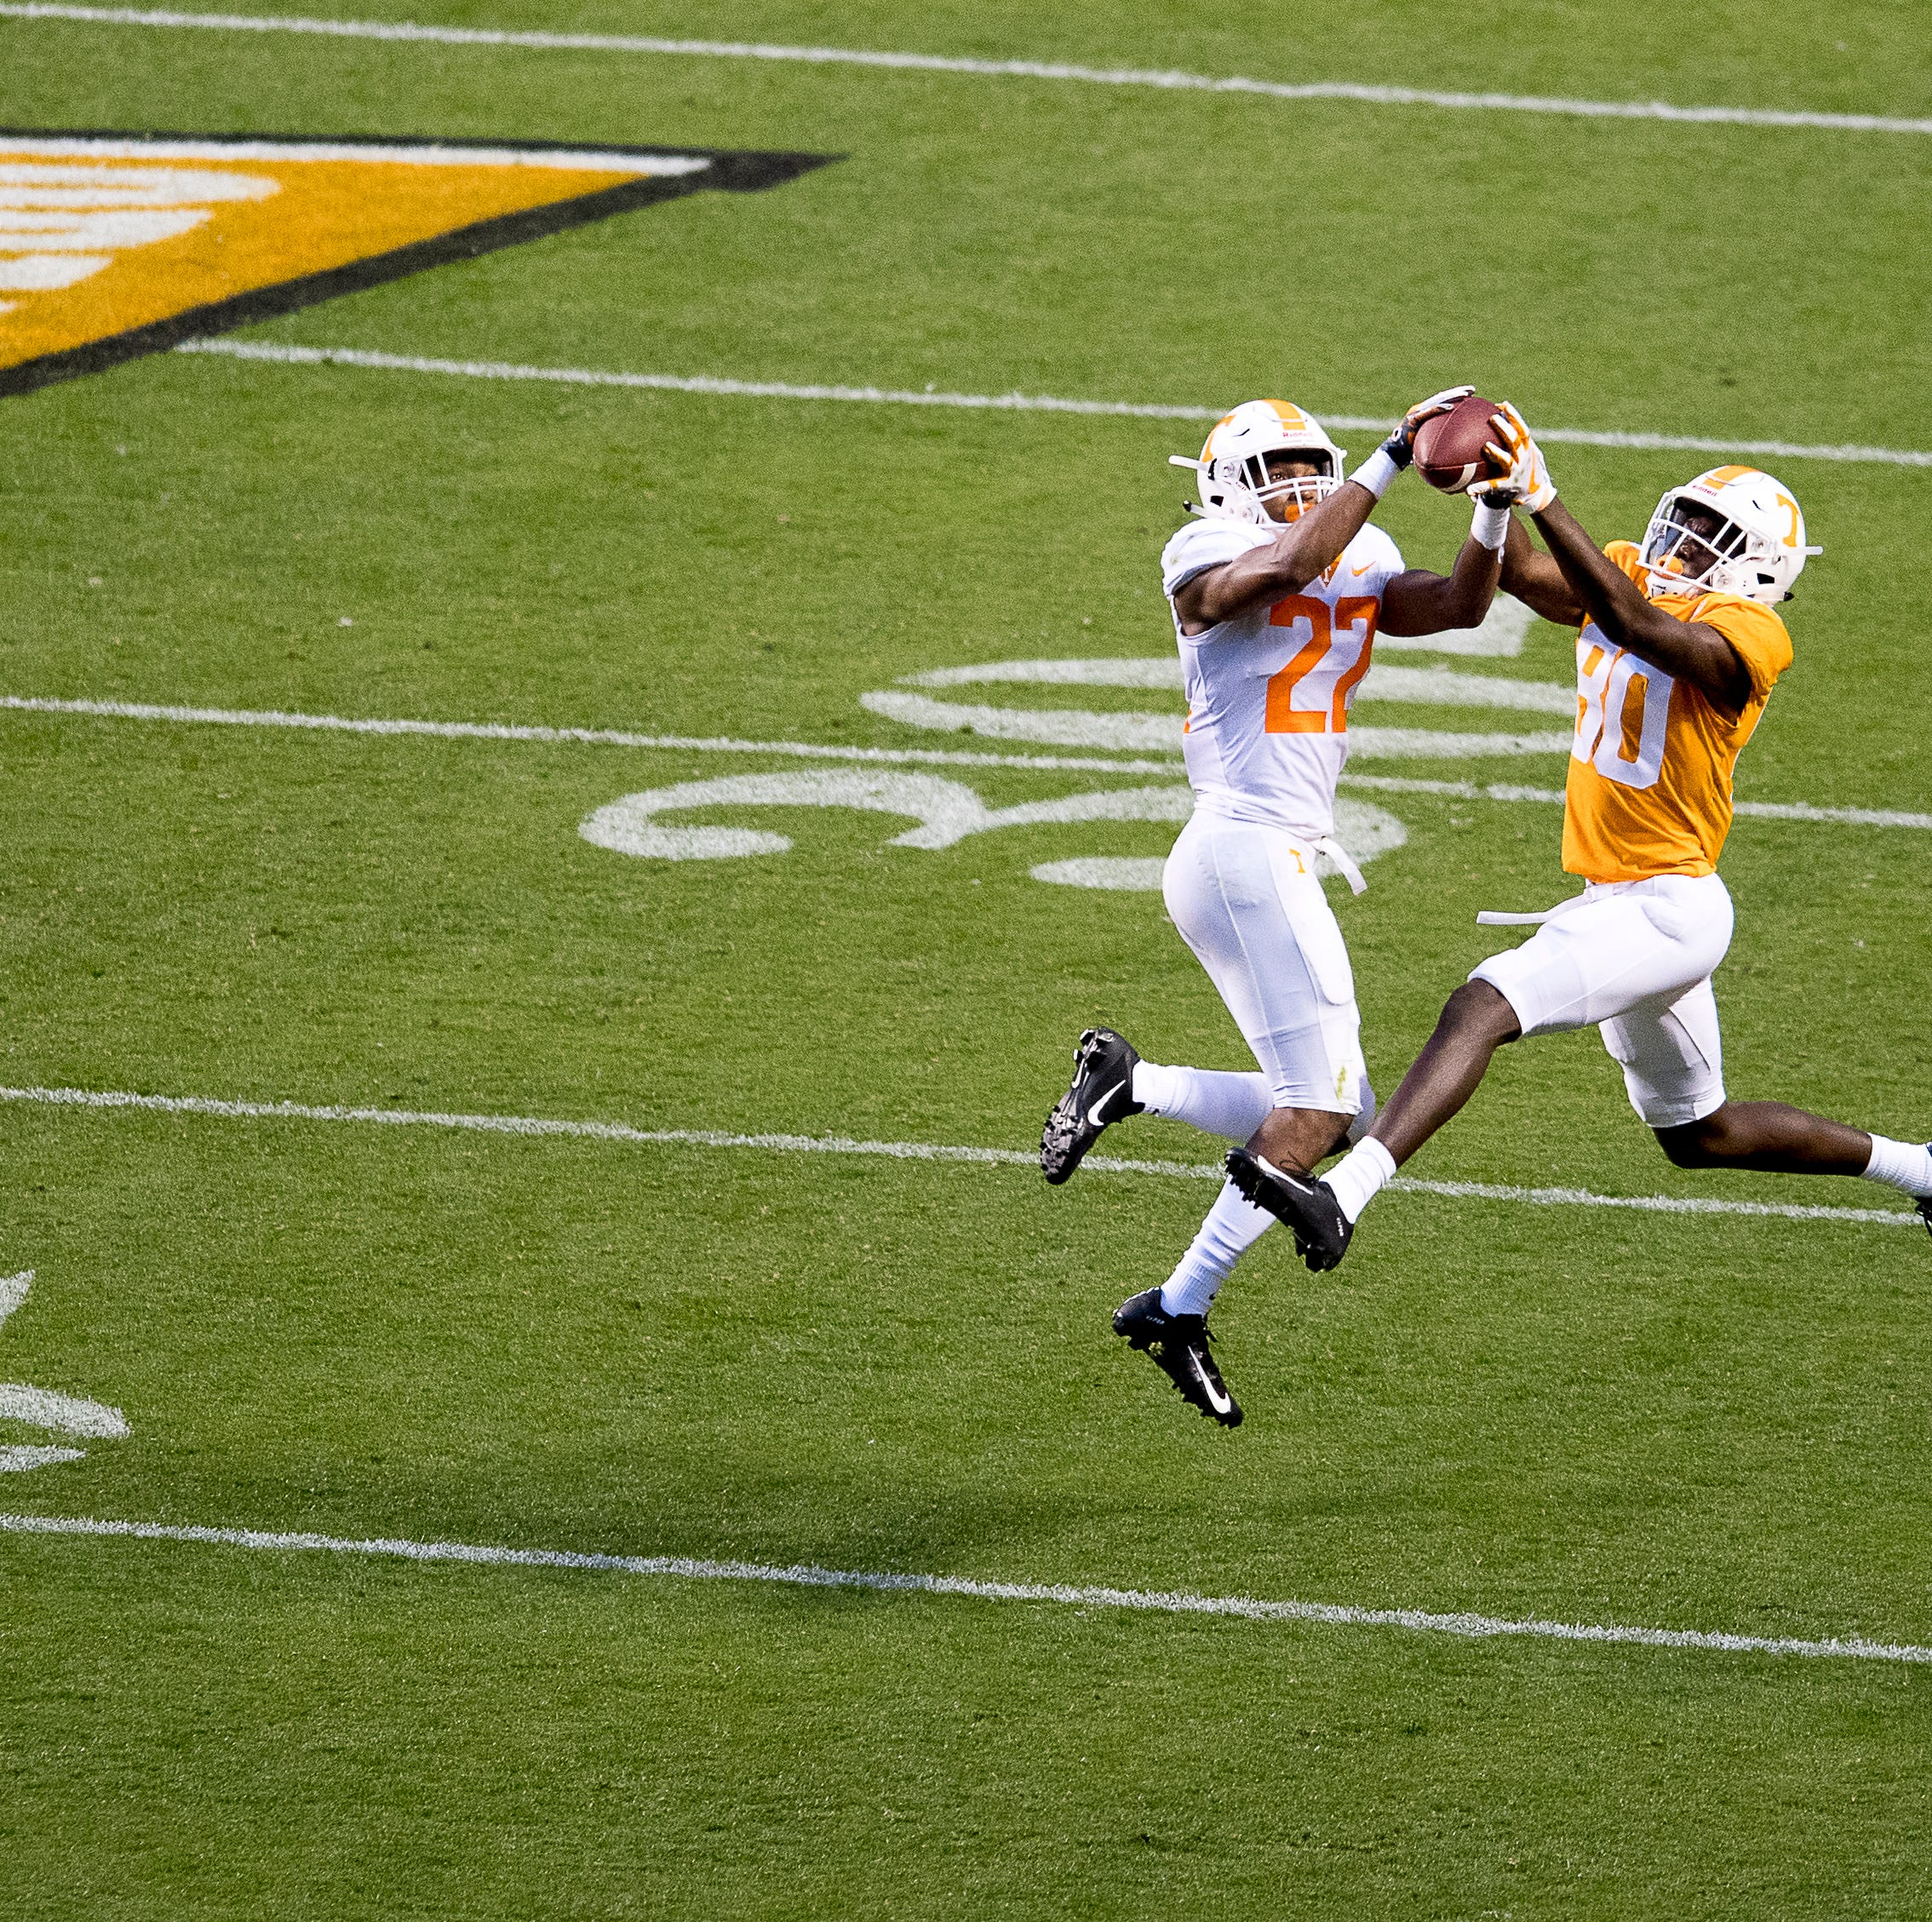 Who is Tennessee freshman safety Jaylen McCollough? Nickname is 'Tank'